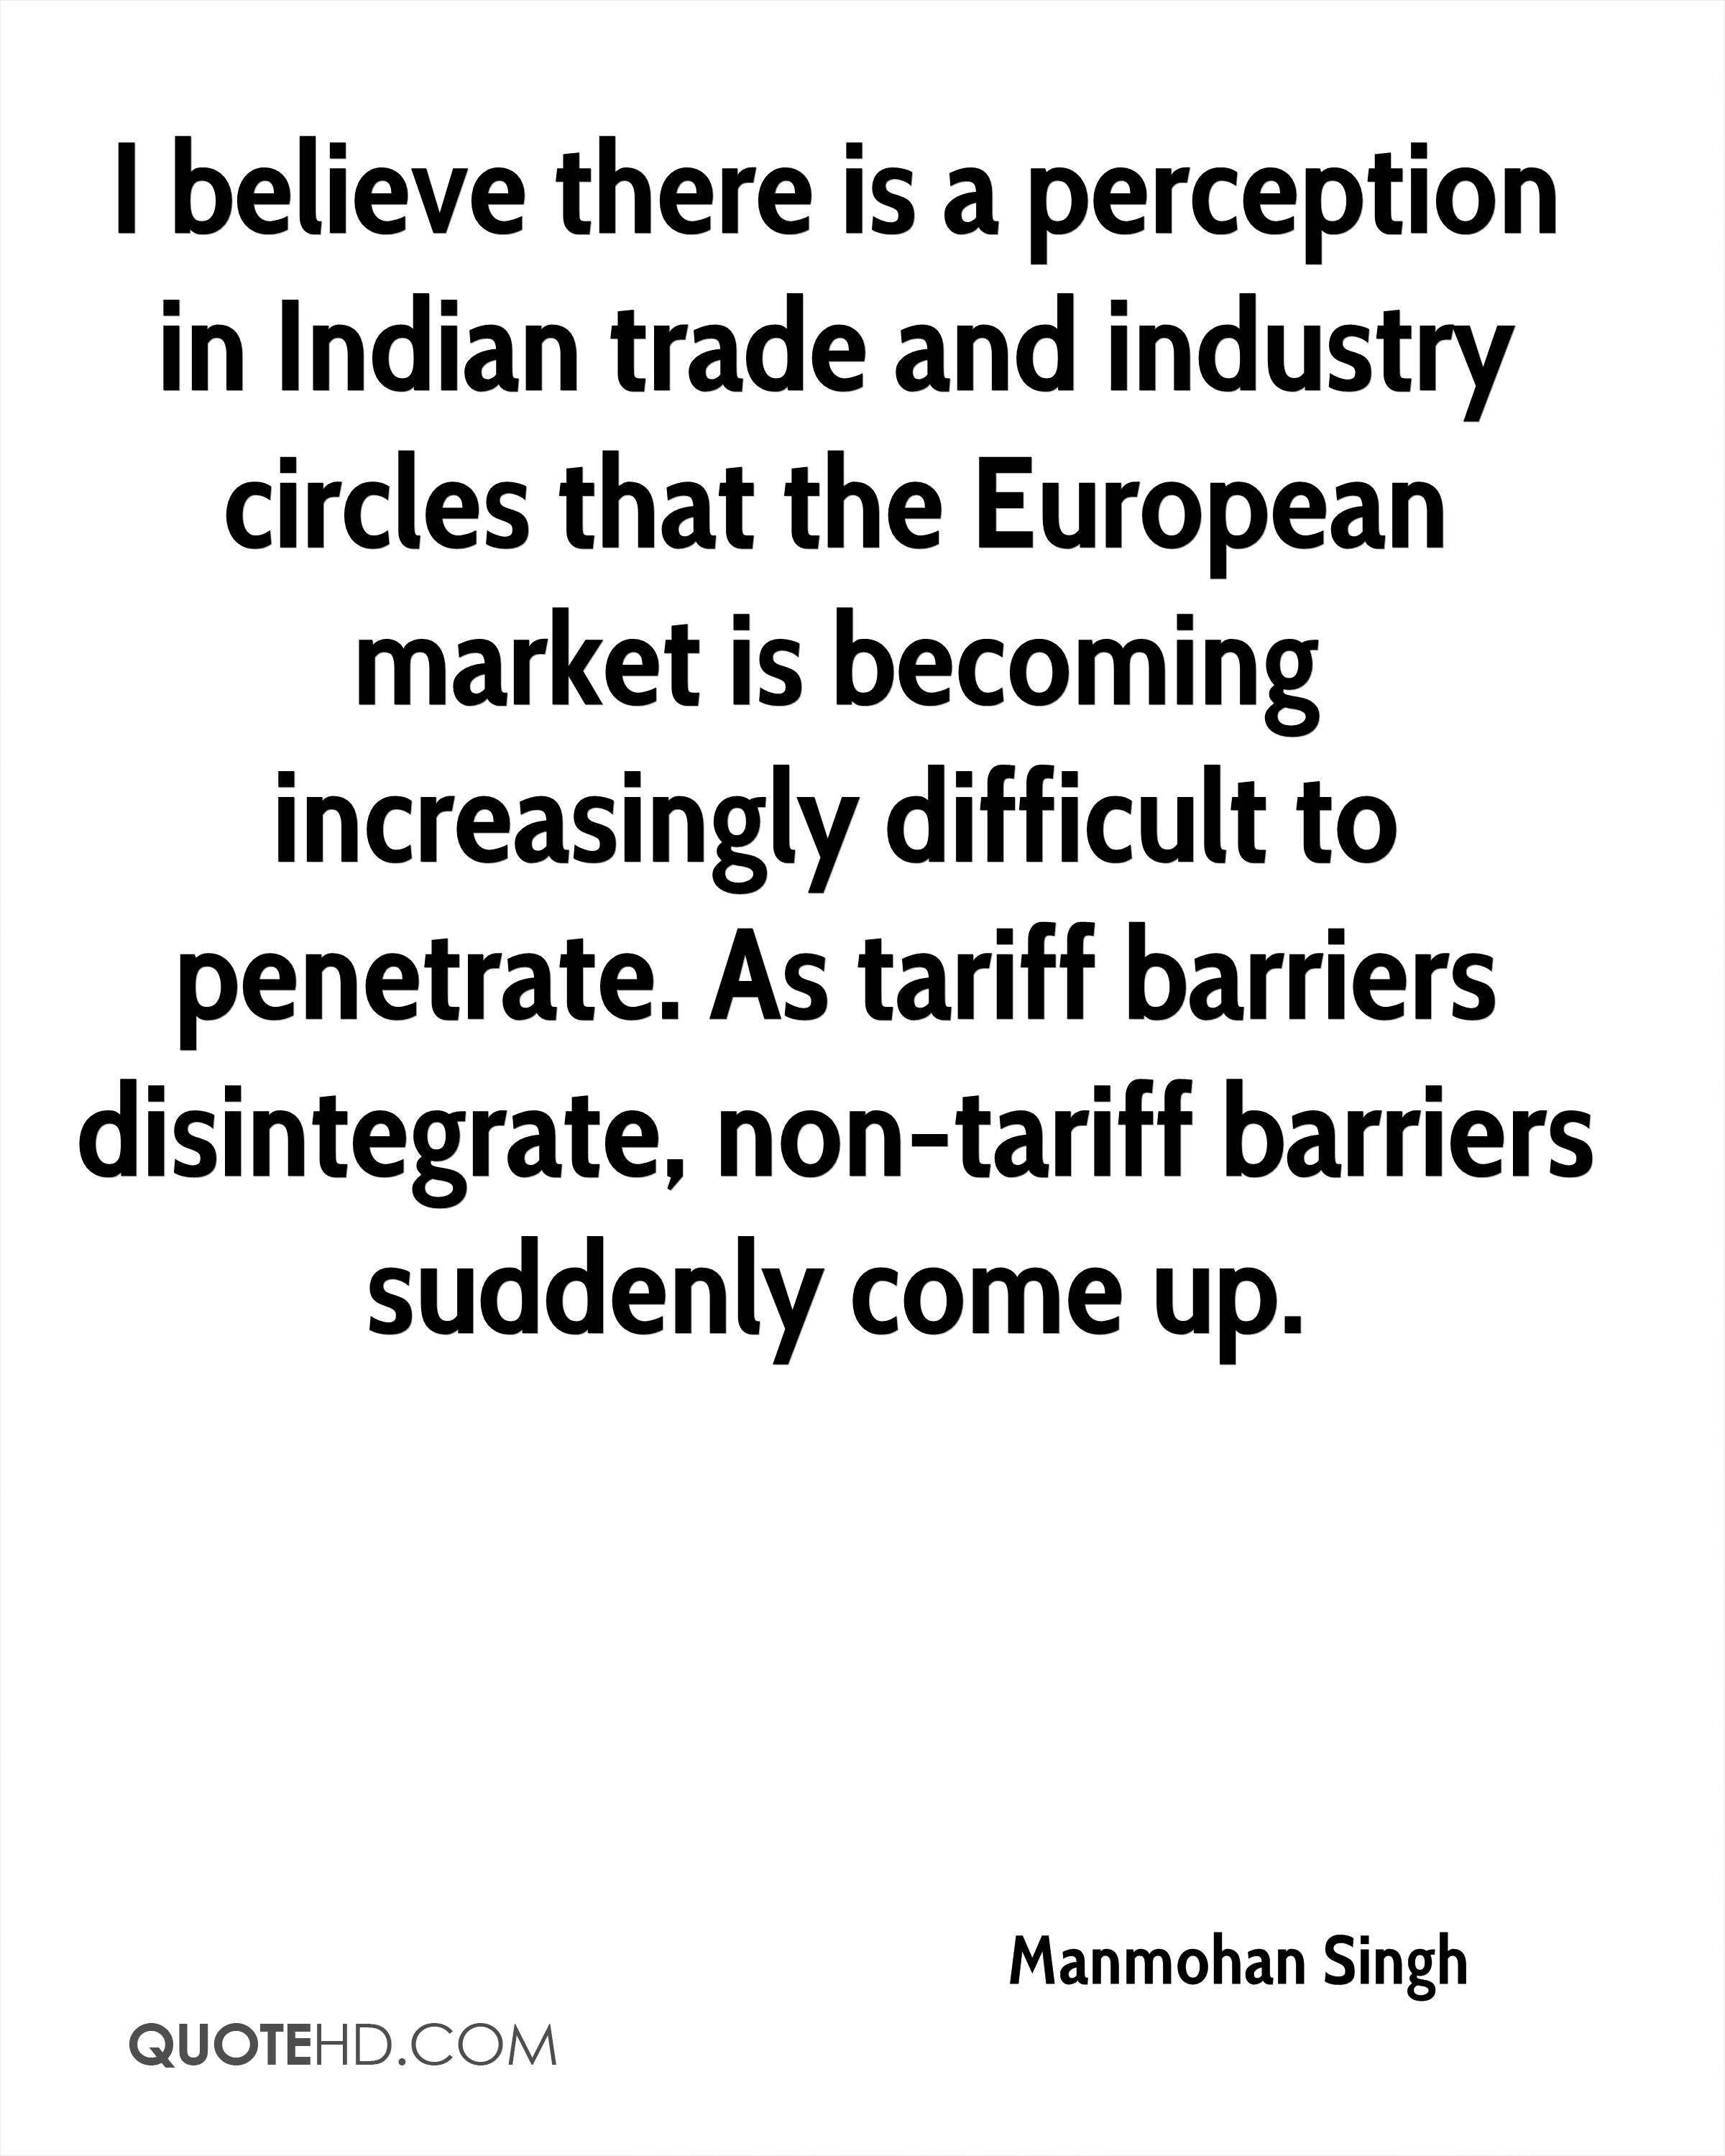 I believe there is a perception in Indian trade and industry circles that the European market is becoming increasingly difficult to penetrate. As tariff barriers disintegrate, non-tariff barriers suddenly come up.